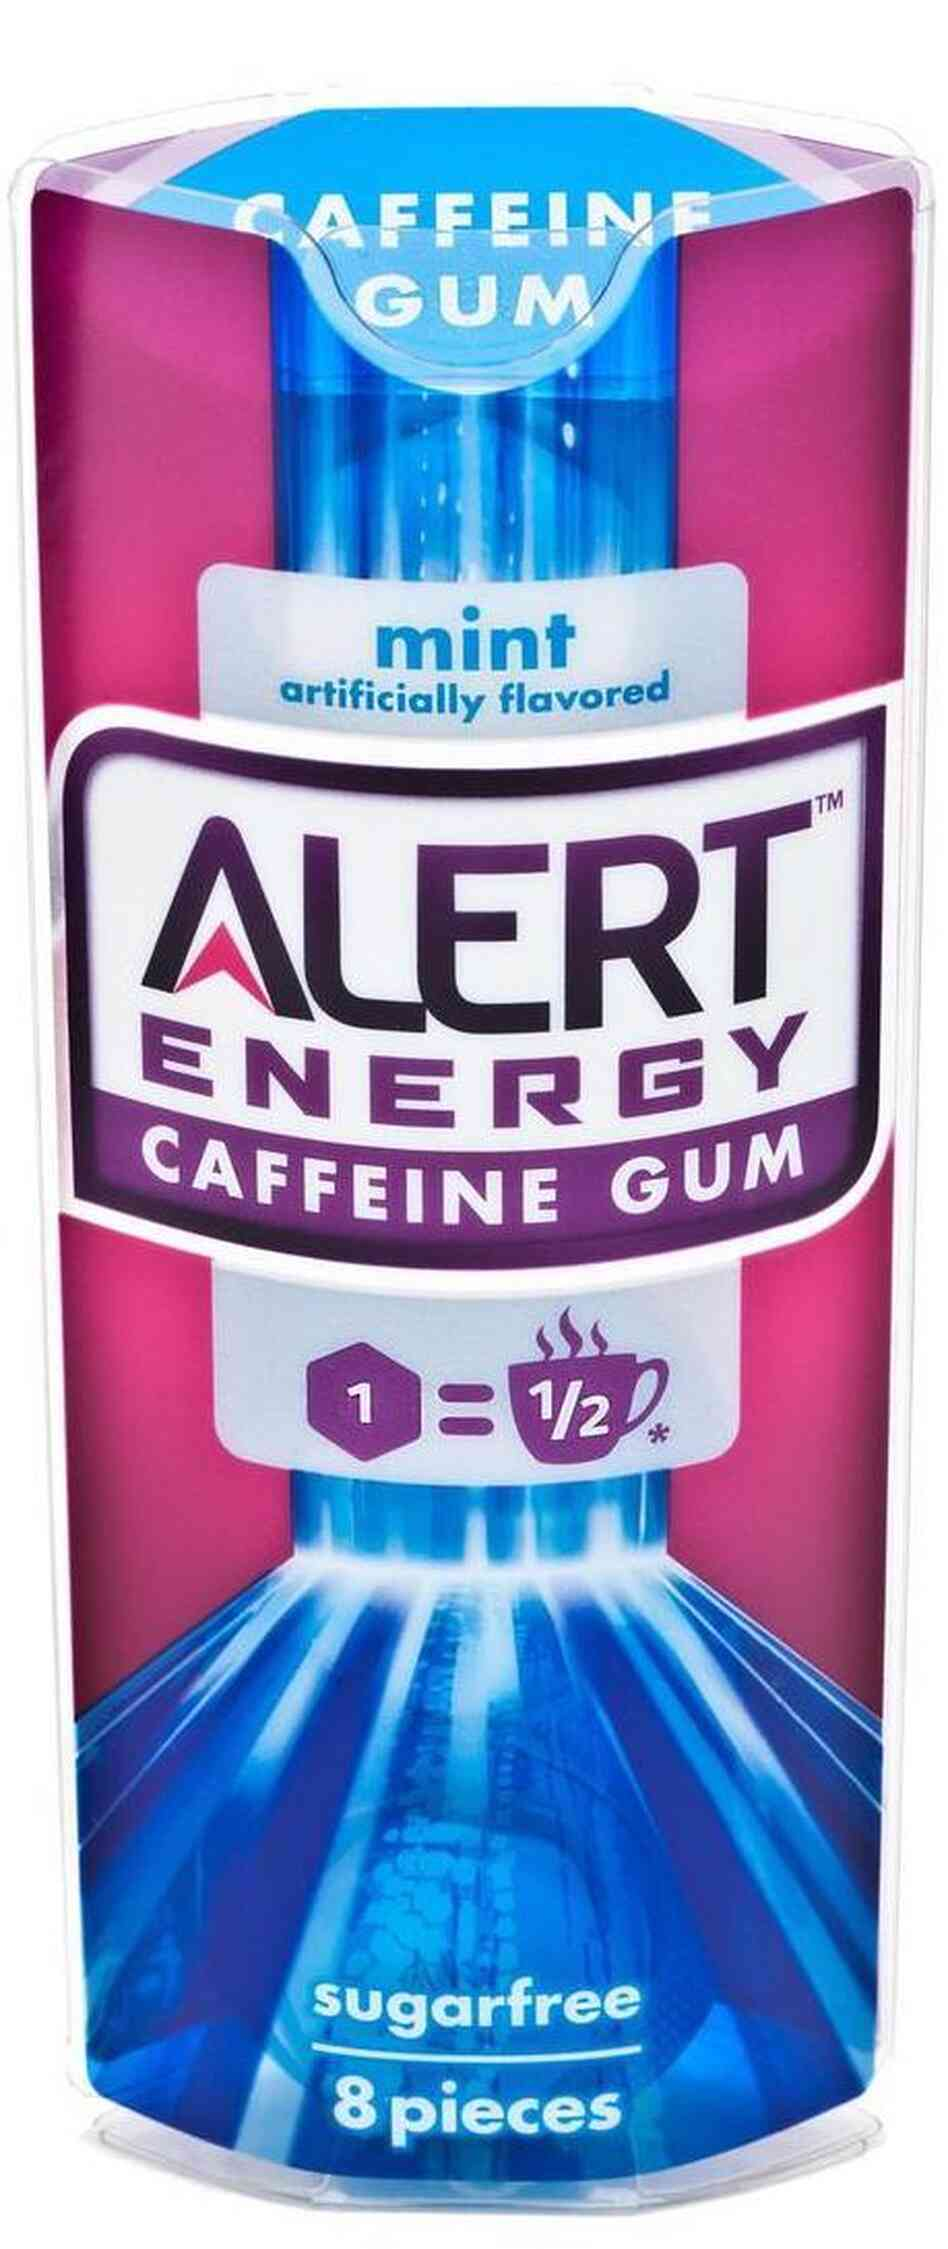 Wrigley took its new Alert Energy Caffeine Gum off the market after it pr